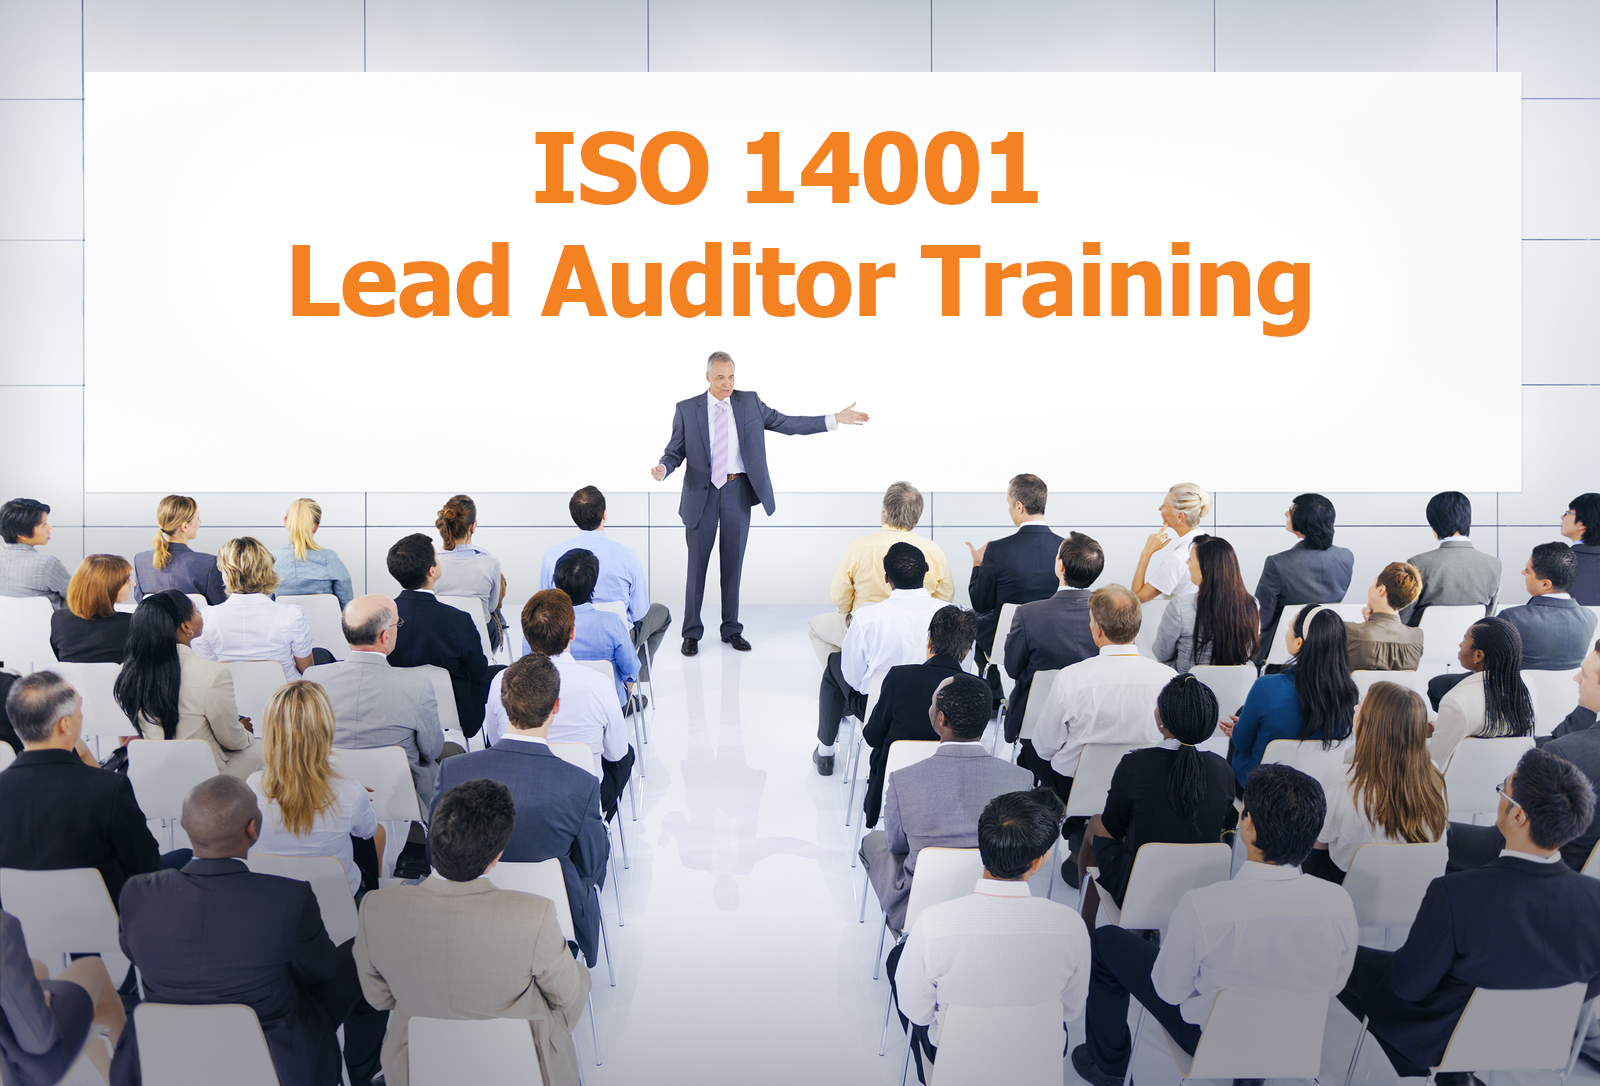 Training Room ISO 14001 Lead Auditor Training